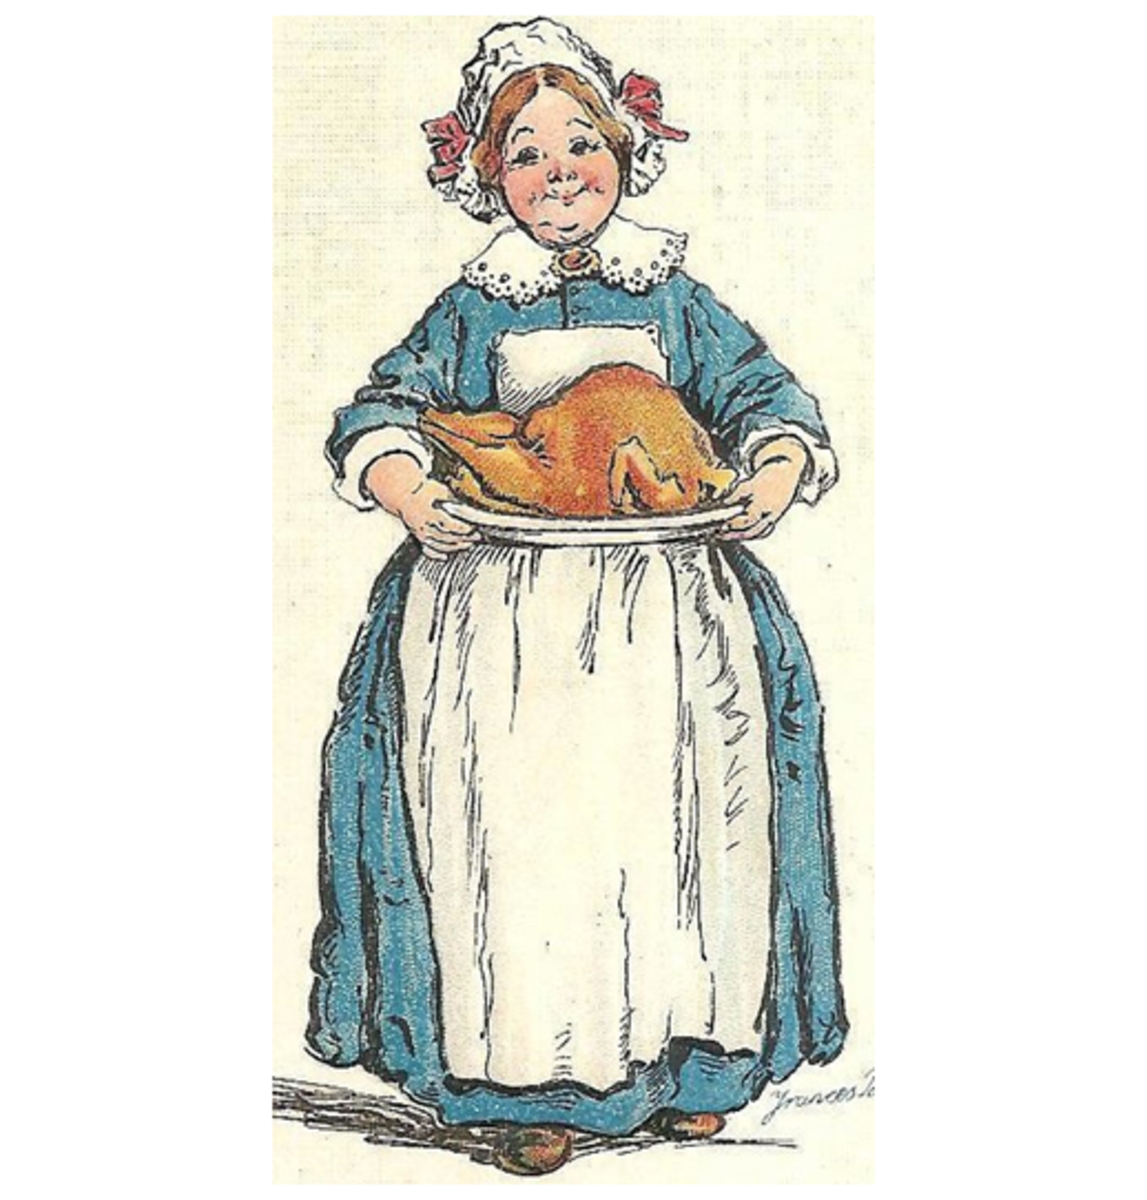 Early American Hostess with Turkey on Platter